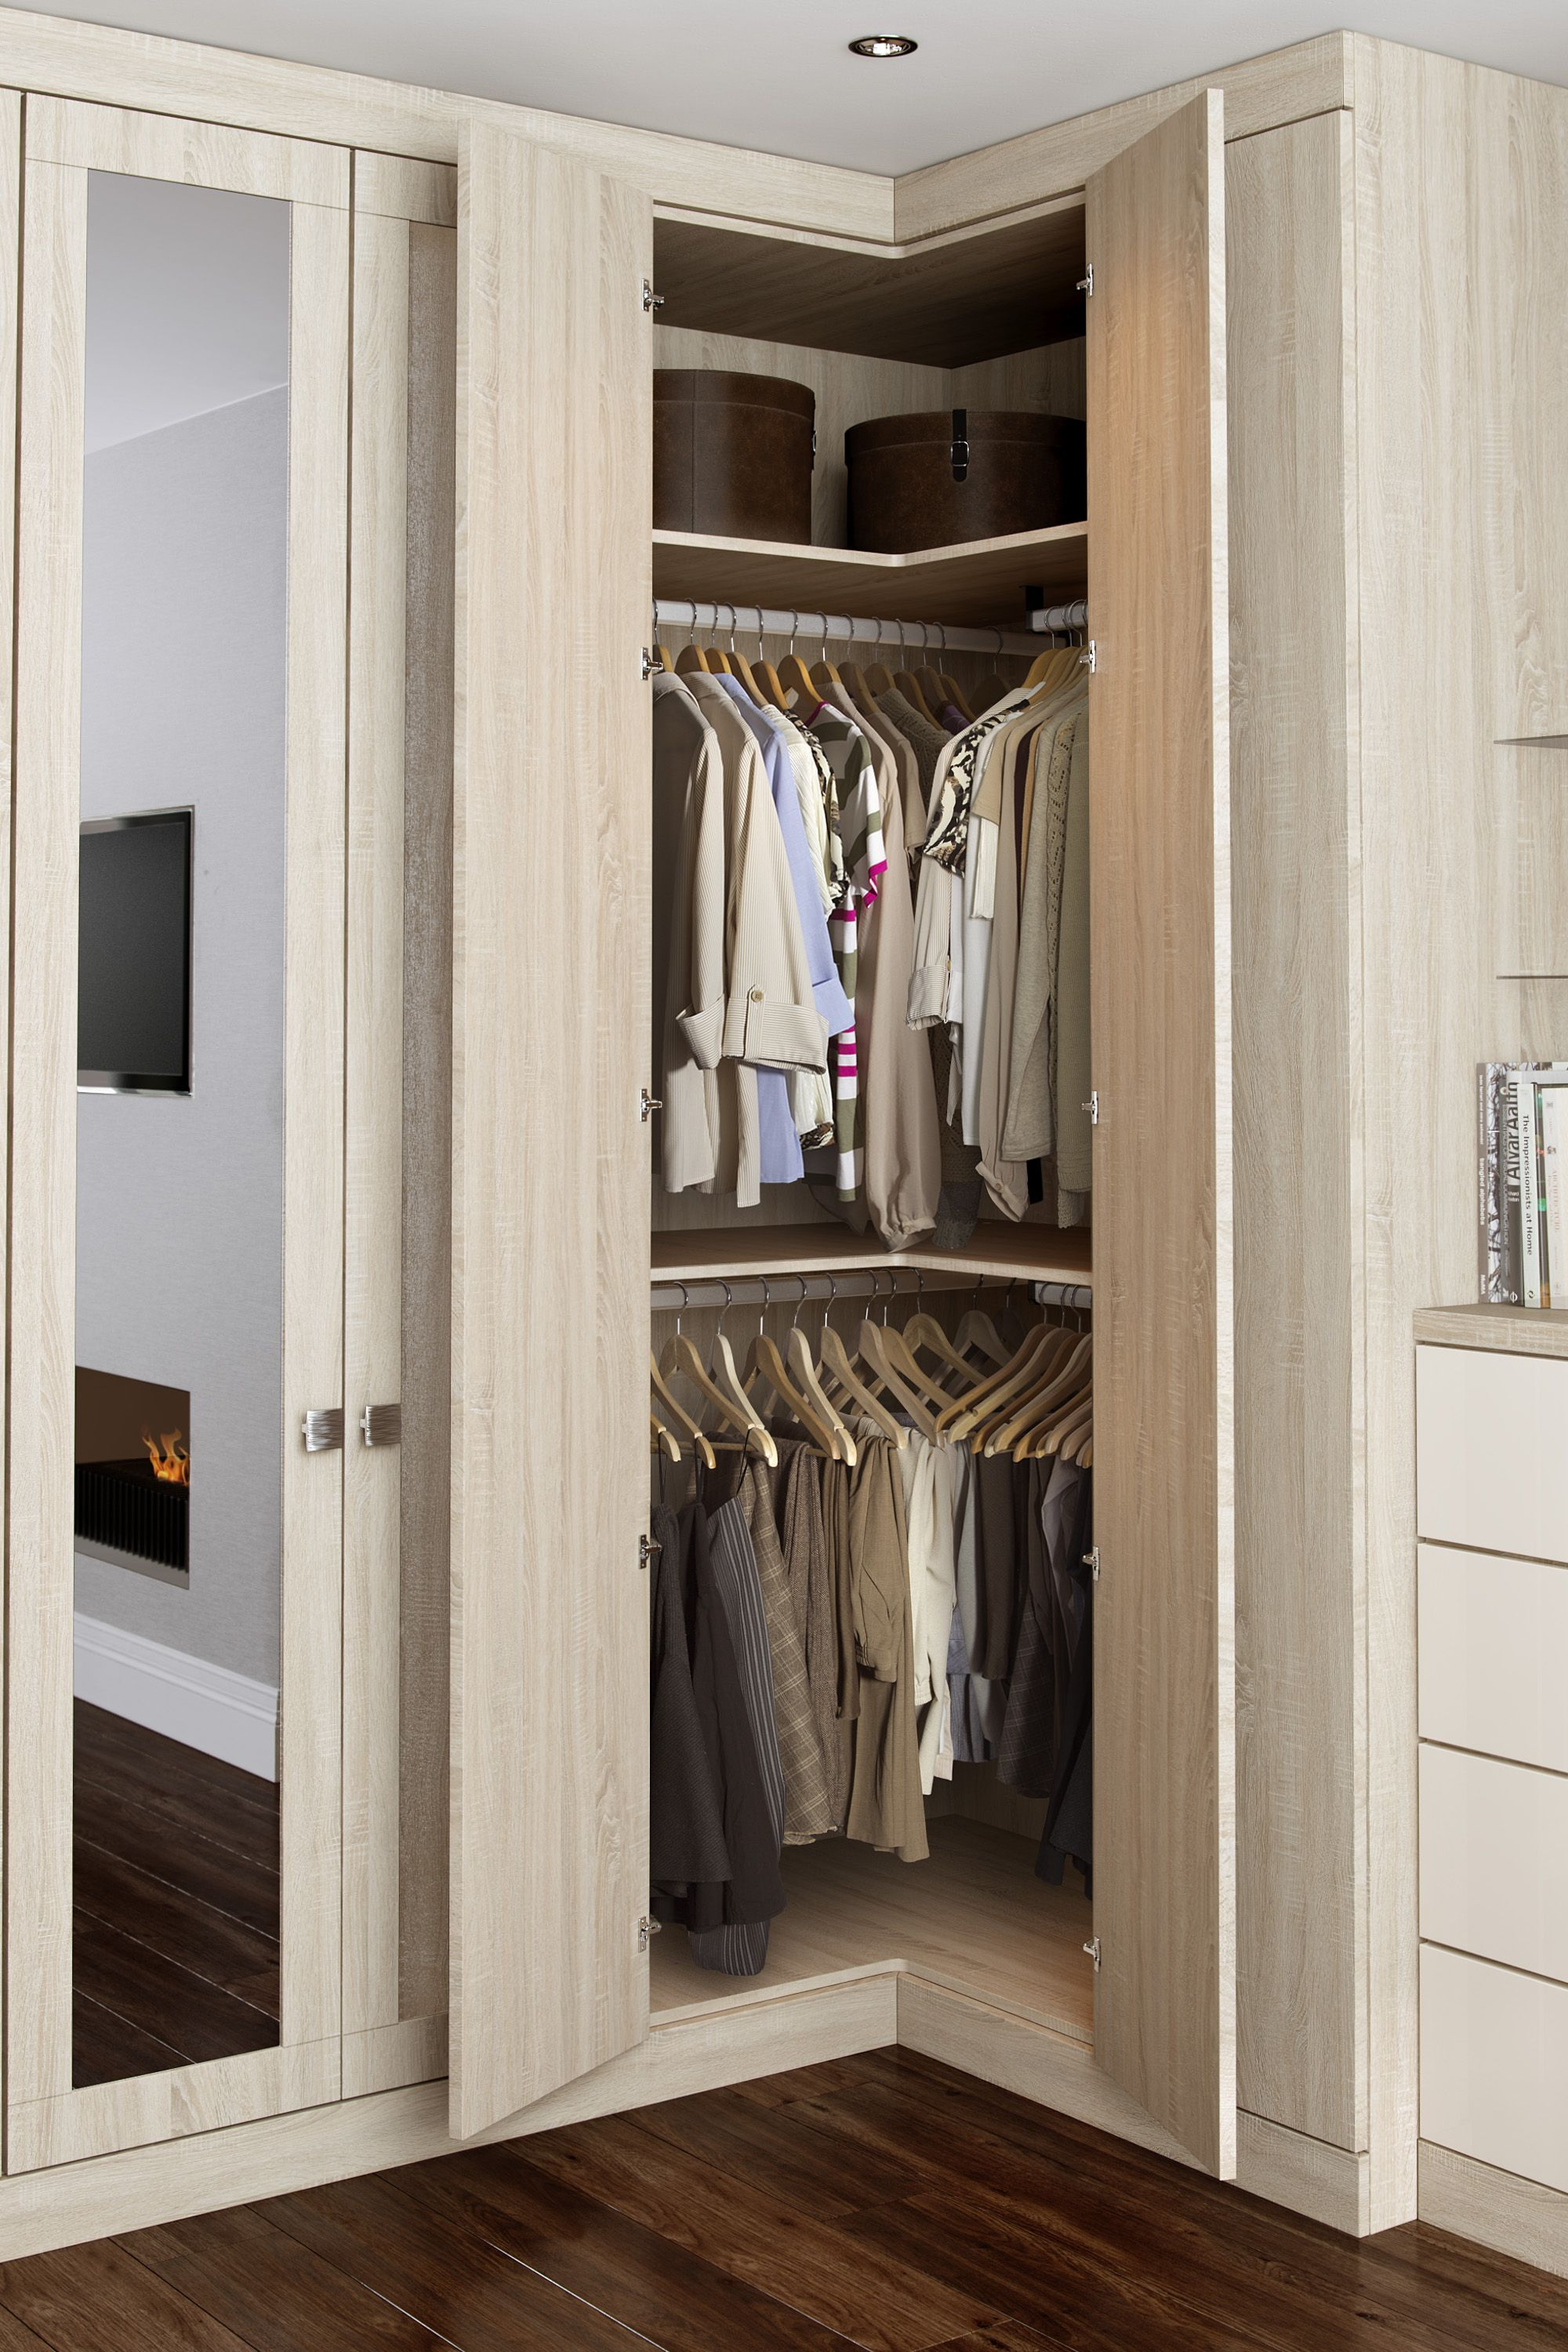 Rio bedroom, L-corner wardrobe solution | Bedroom | Pinterest ...